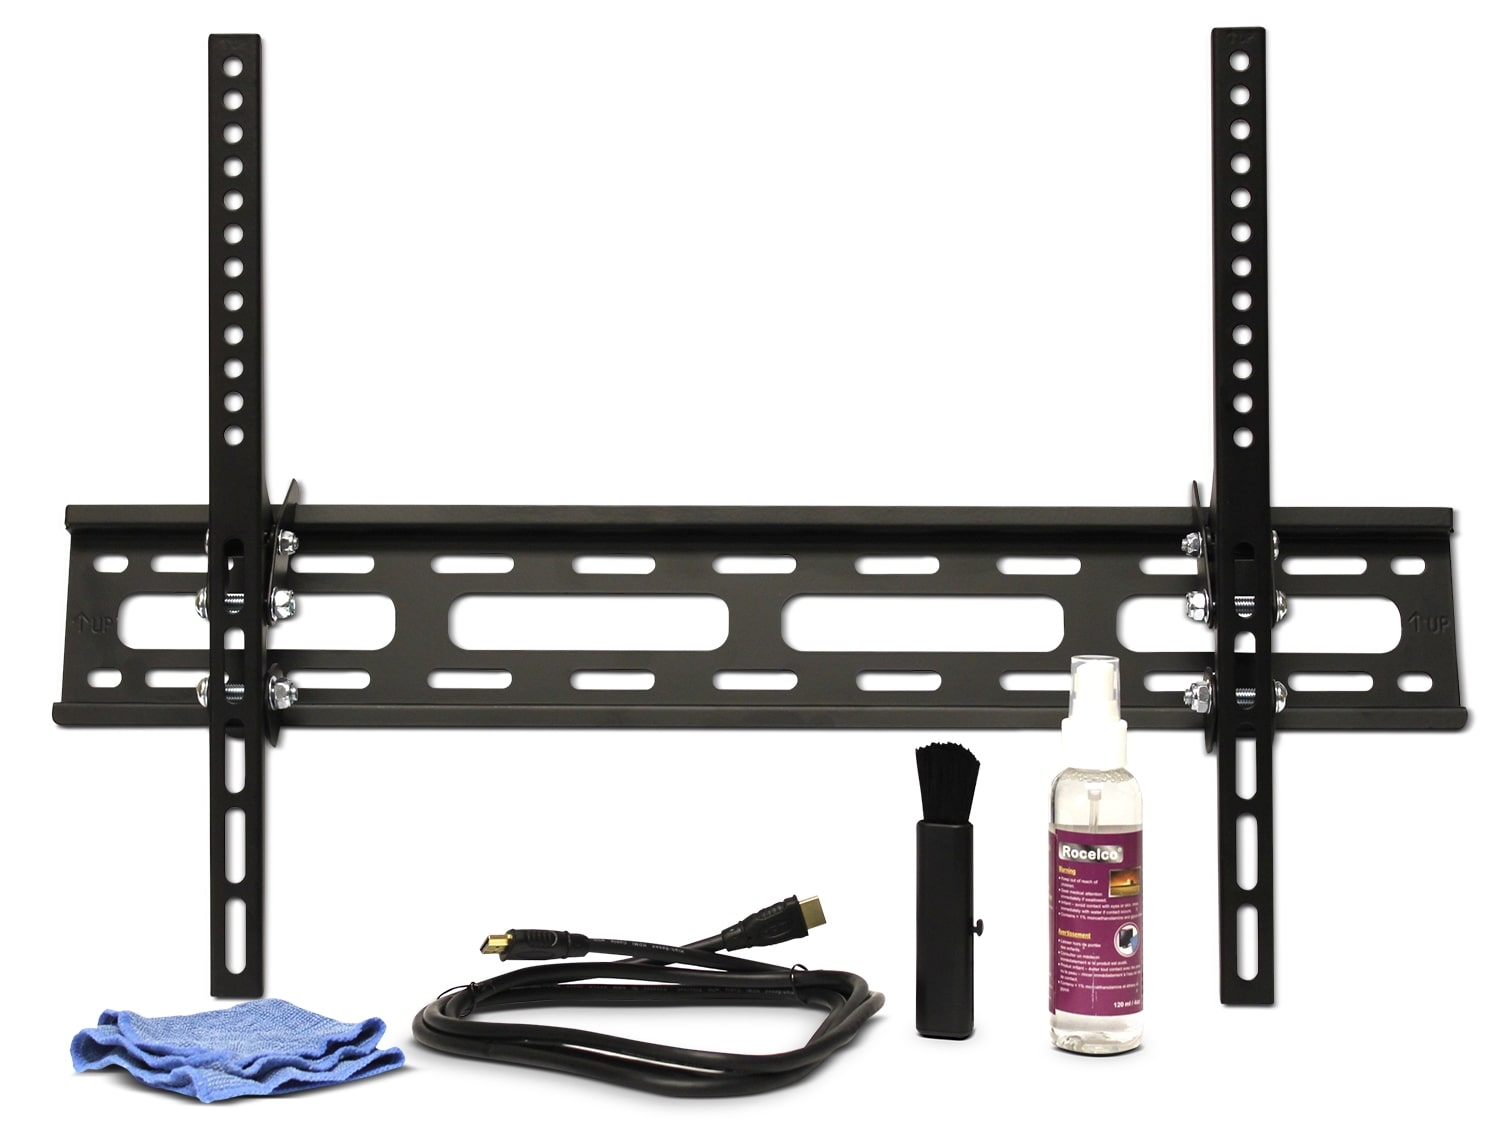 Televisions - Rocelco TV Mount, HDMI Cable and Cleaning Pack TMC